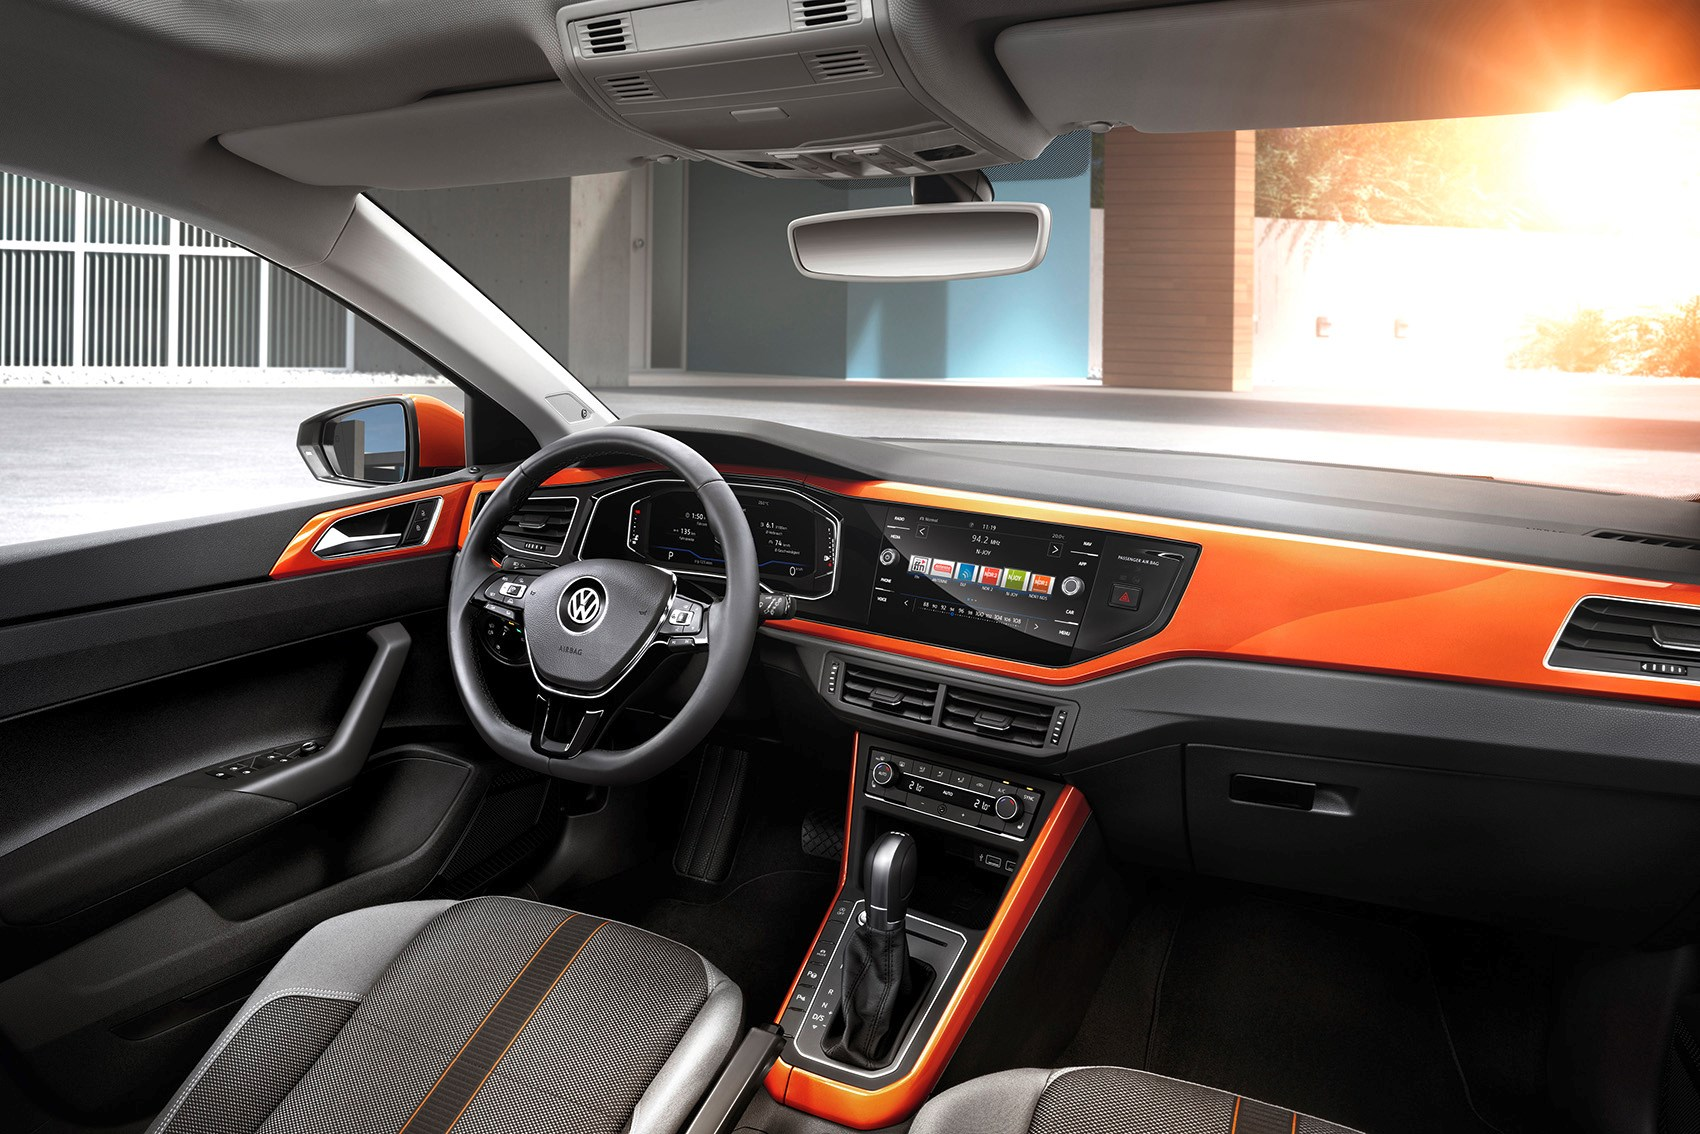 New VW Polo interior